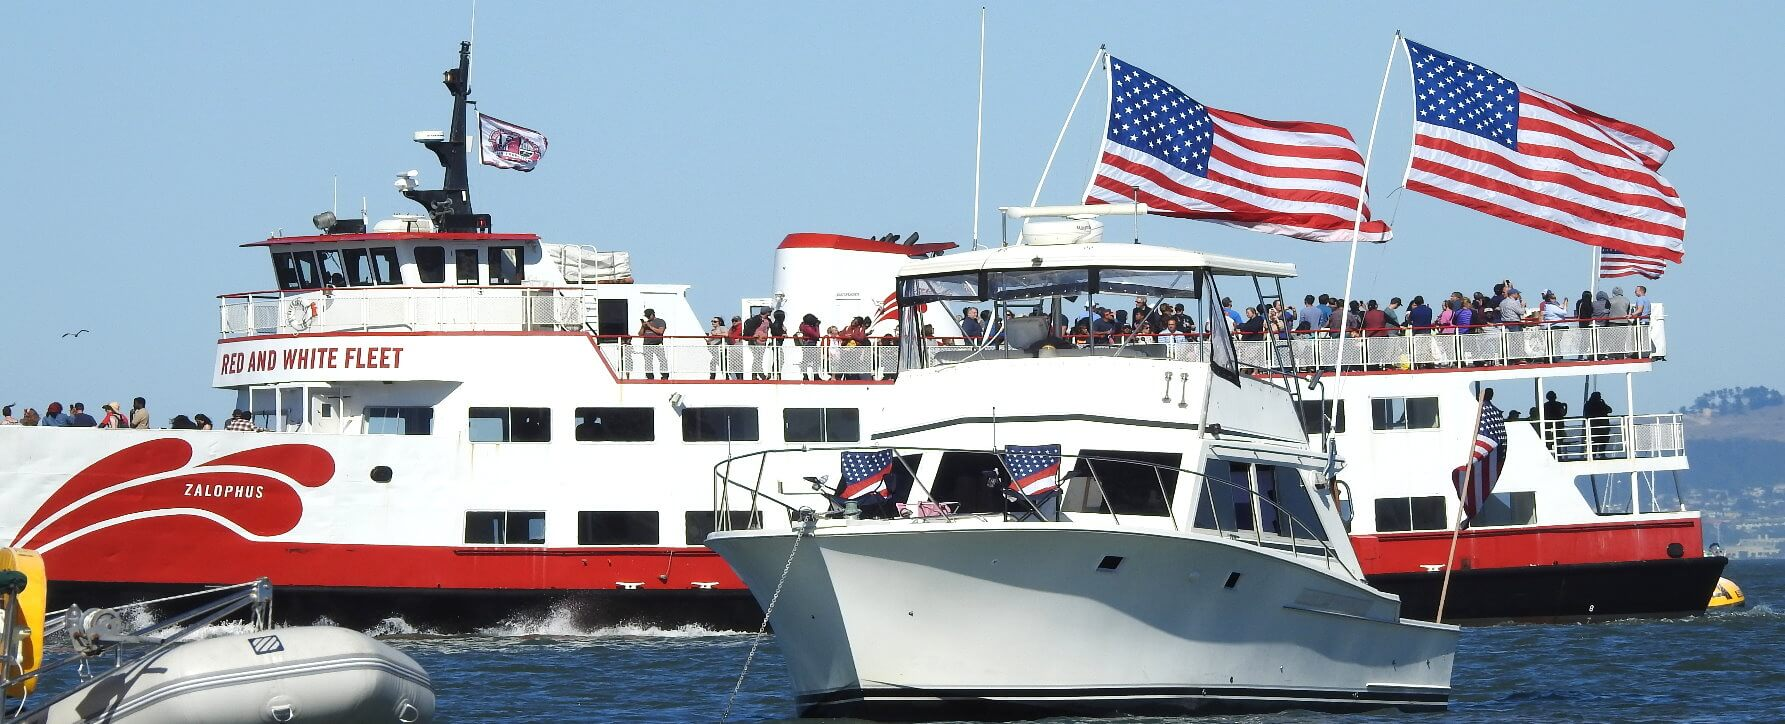 city_guided_tour_and_bay_cruise_ferry_trip_in_the_san_francisco_bay_national_holidays